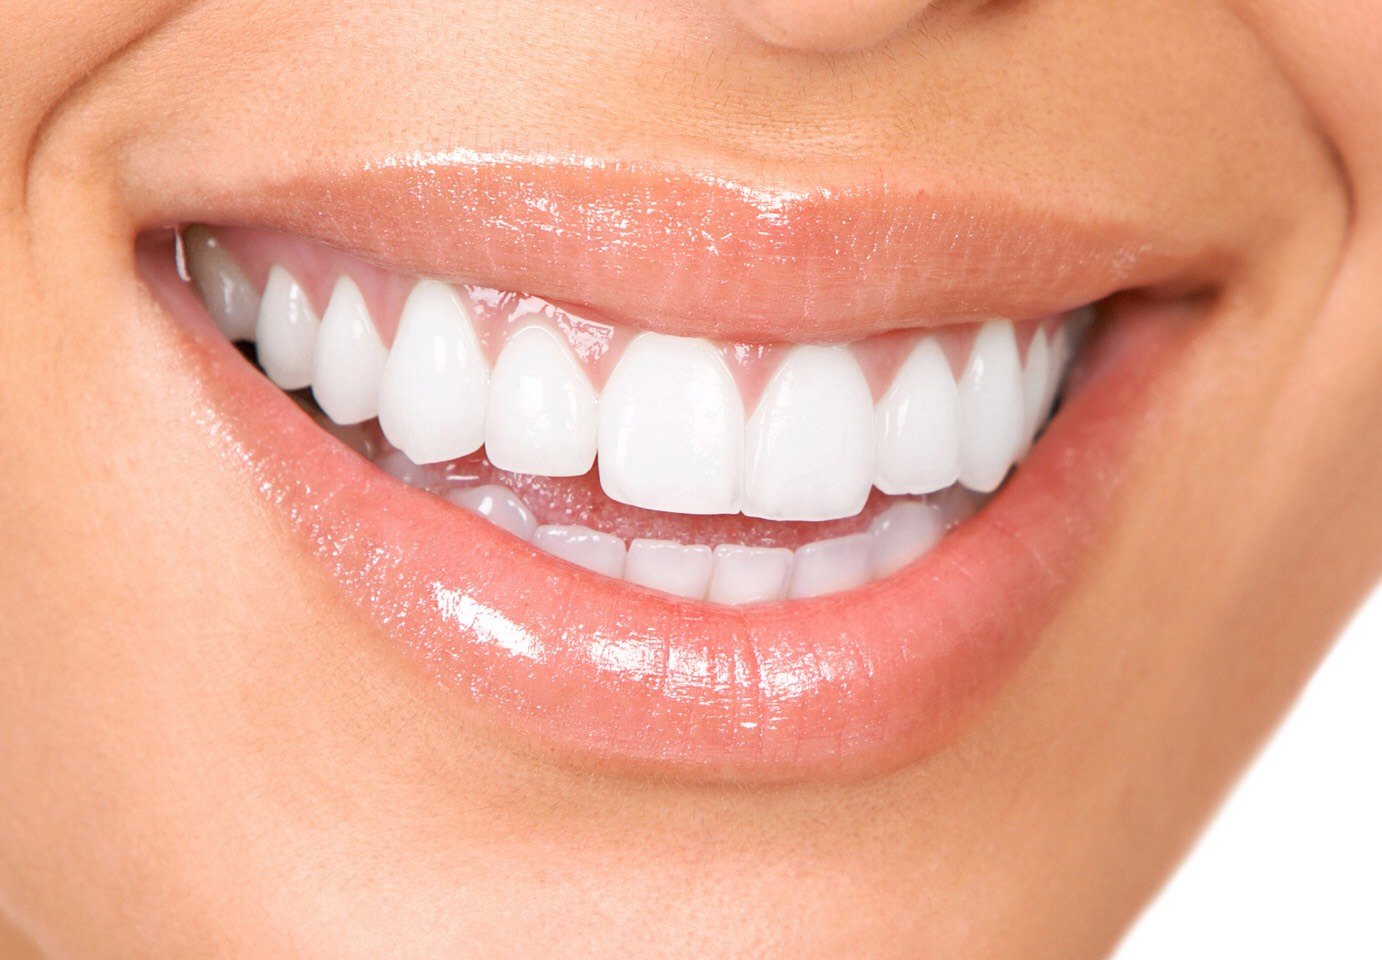 Teeth Whitener – Cut off a piece of the peel and rub the inner part gently over your teeth for a few minutes, then rinse off. Repeat 1-2x daily for whiter looking teeth.